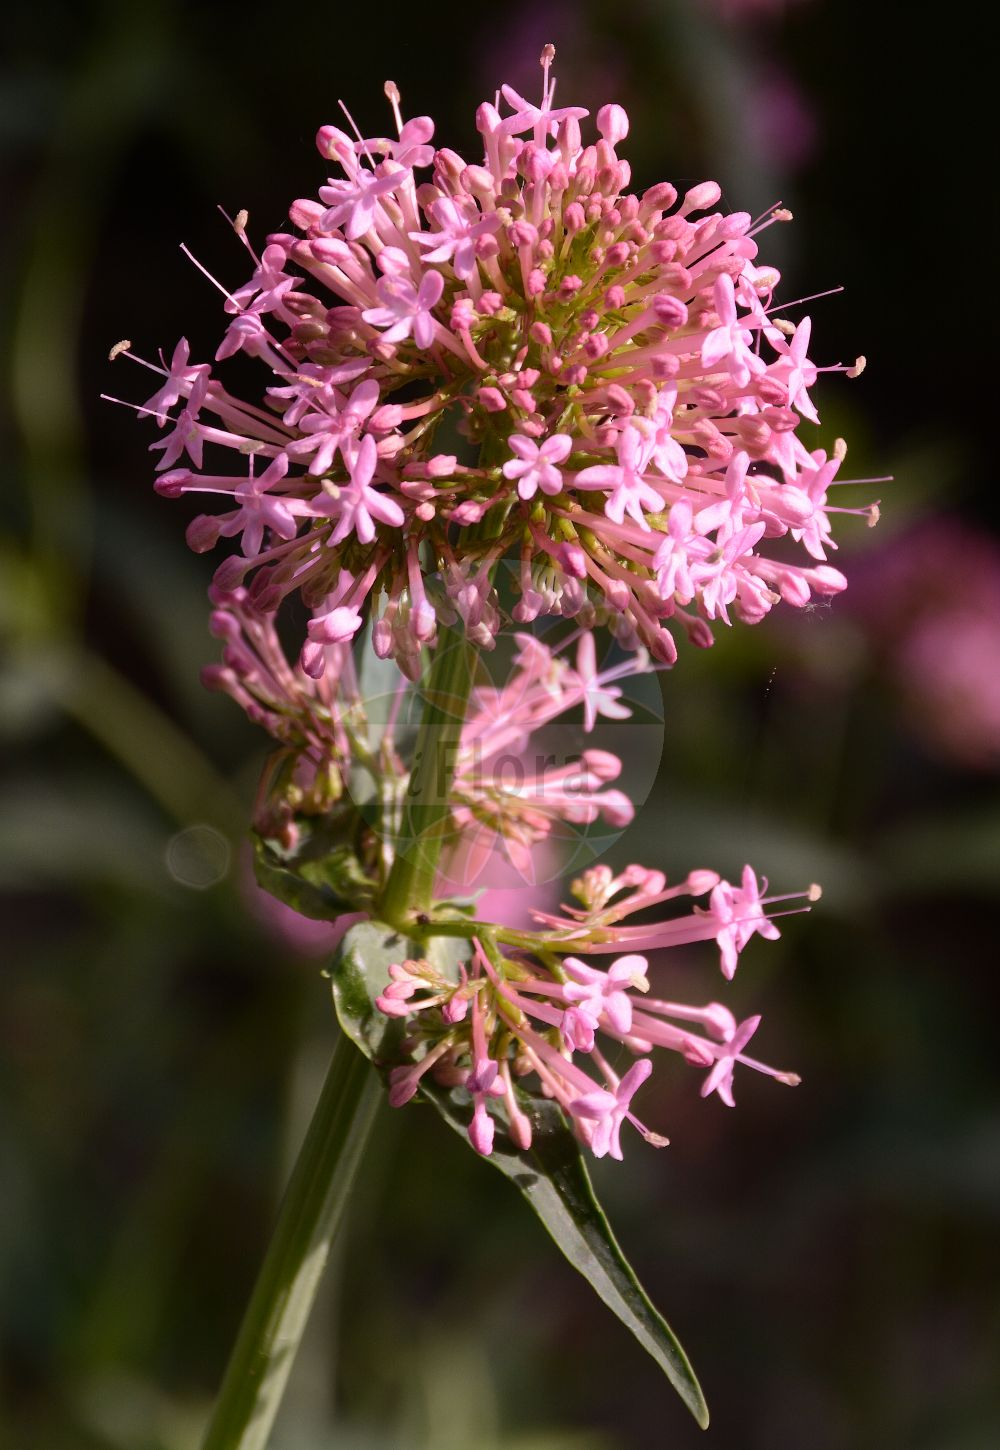 Foto von Centranthus angustifolius. Das Foto wurde in Dresden, Sachsen, Deutschland aufgenommen. ---- Photo of Centranthus angustifolius.The picture was taken in Dresden, Sachsen, Germany.(Centranthus angustifolius,Valeriana angustifolia,Centranthus,Spornblume,Lilac,Caprifoliaceae,Geissblattgewaechse,Honeysuckle family)